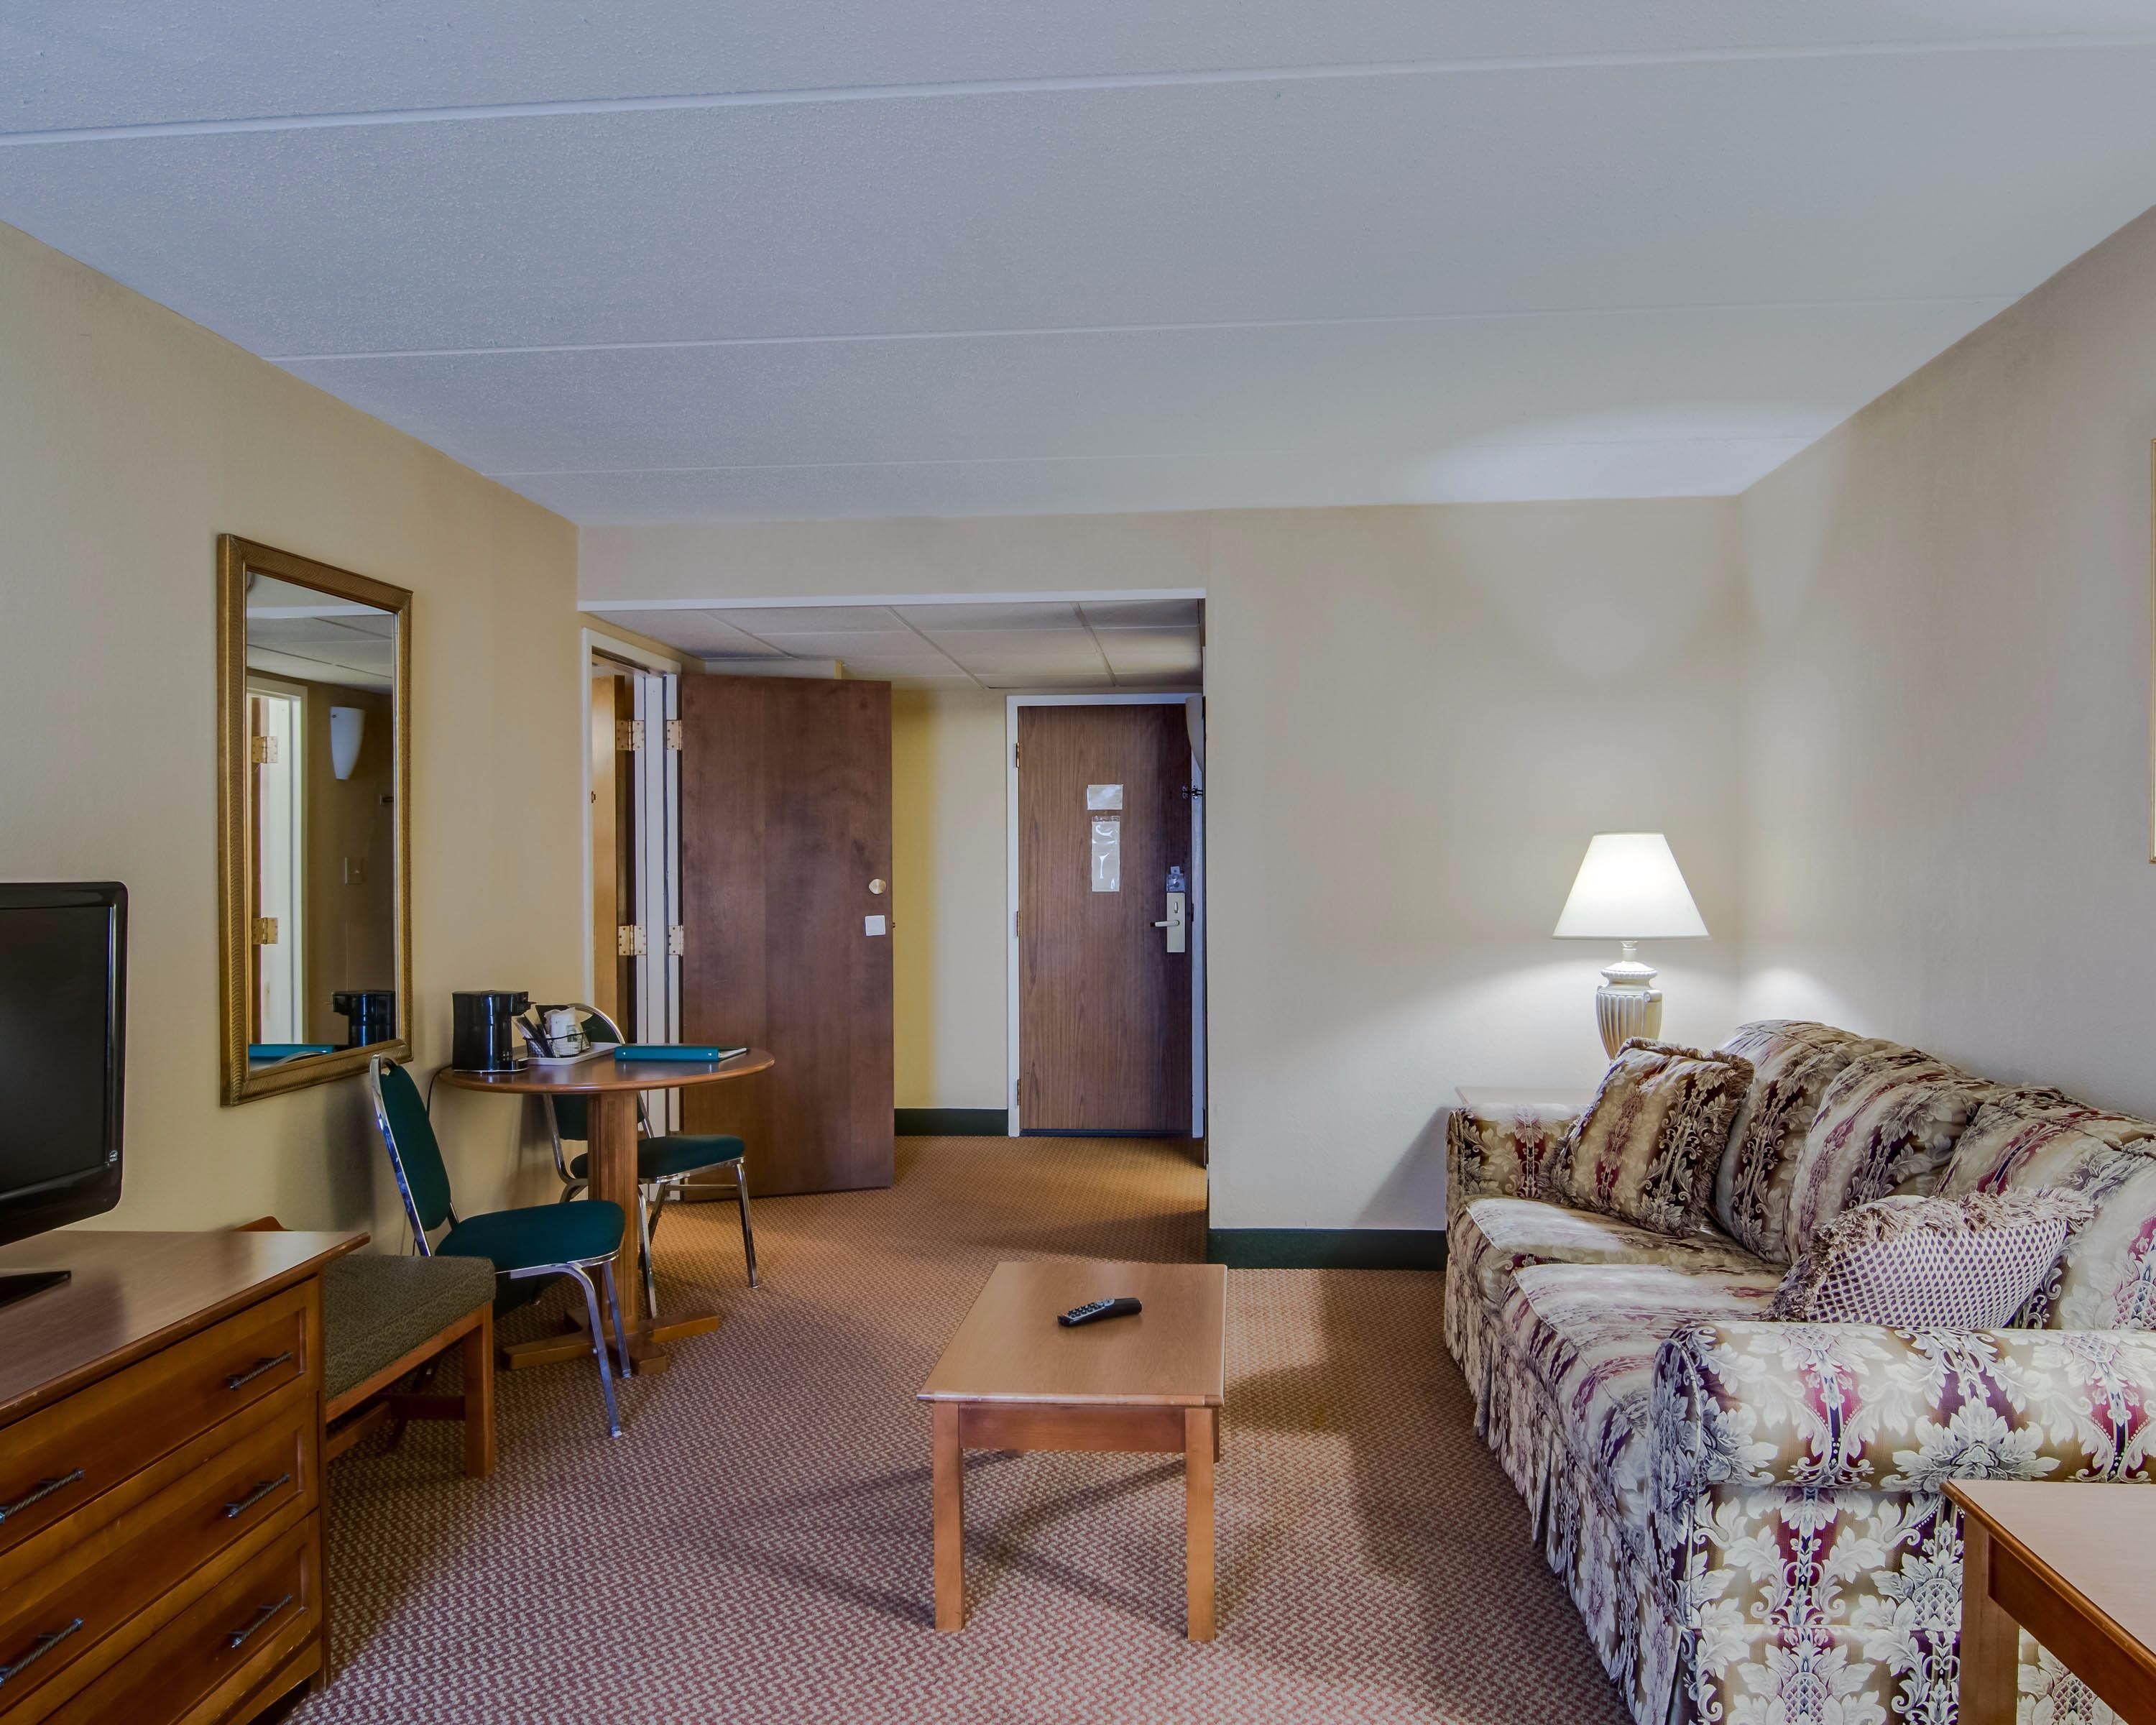 Quality Hotel And Conference Center, www.choicehotels.com WV